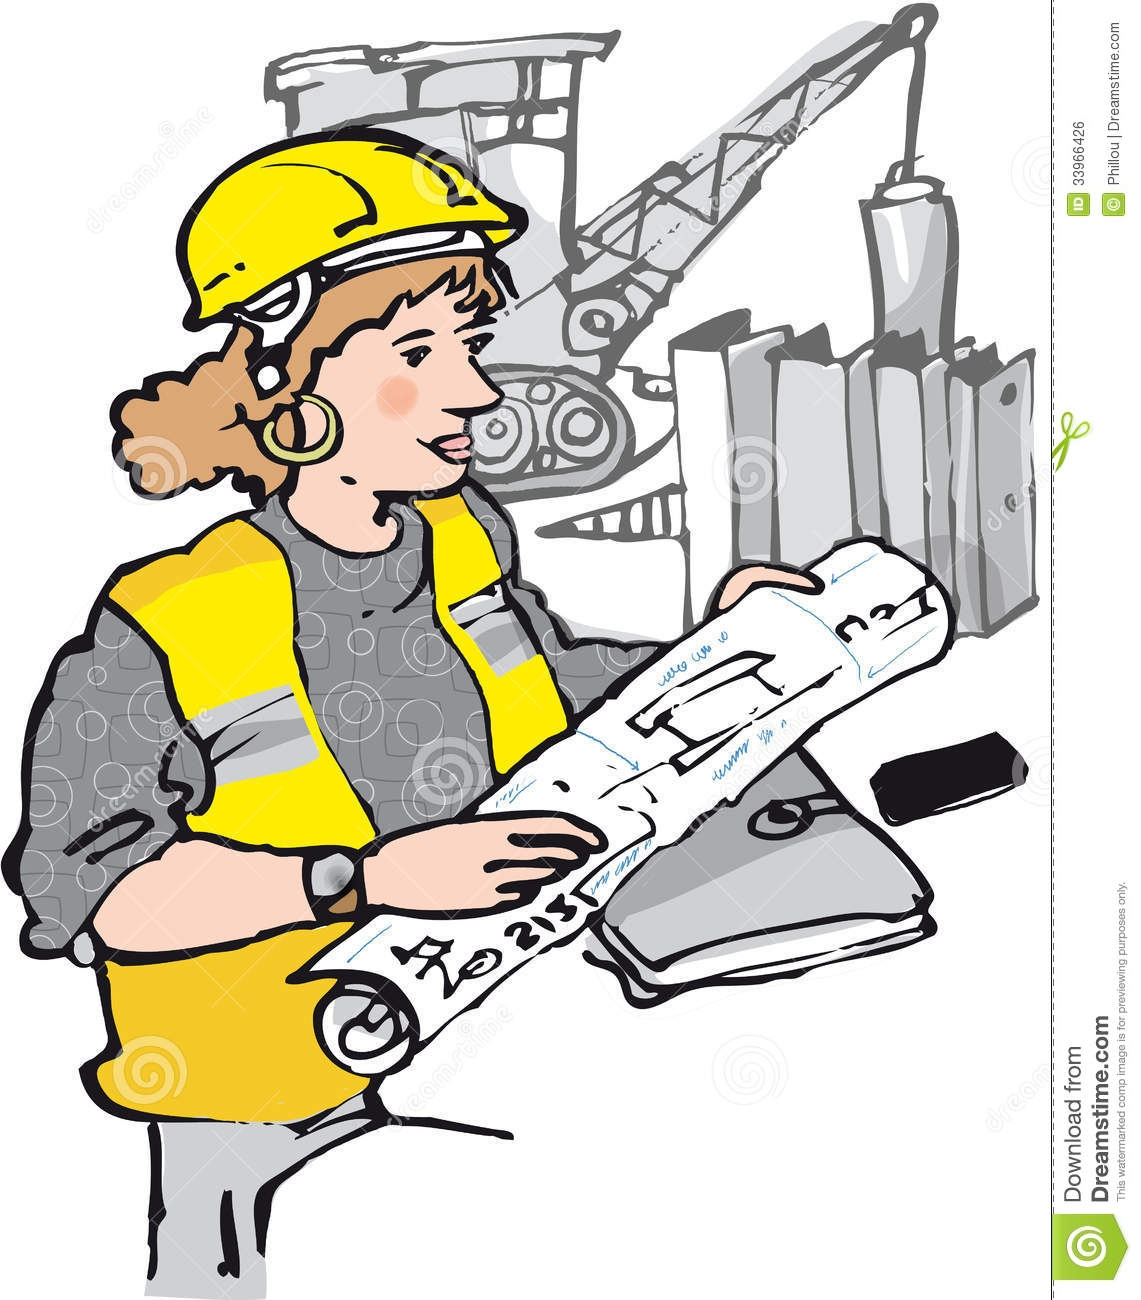 Engineer clipart Awesome Civil Engineer Clipart » Clipart Station.